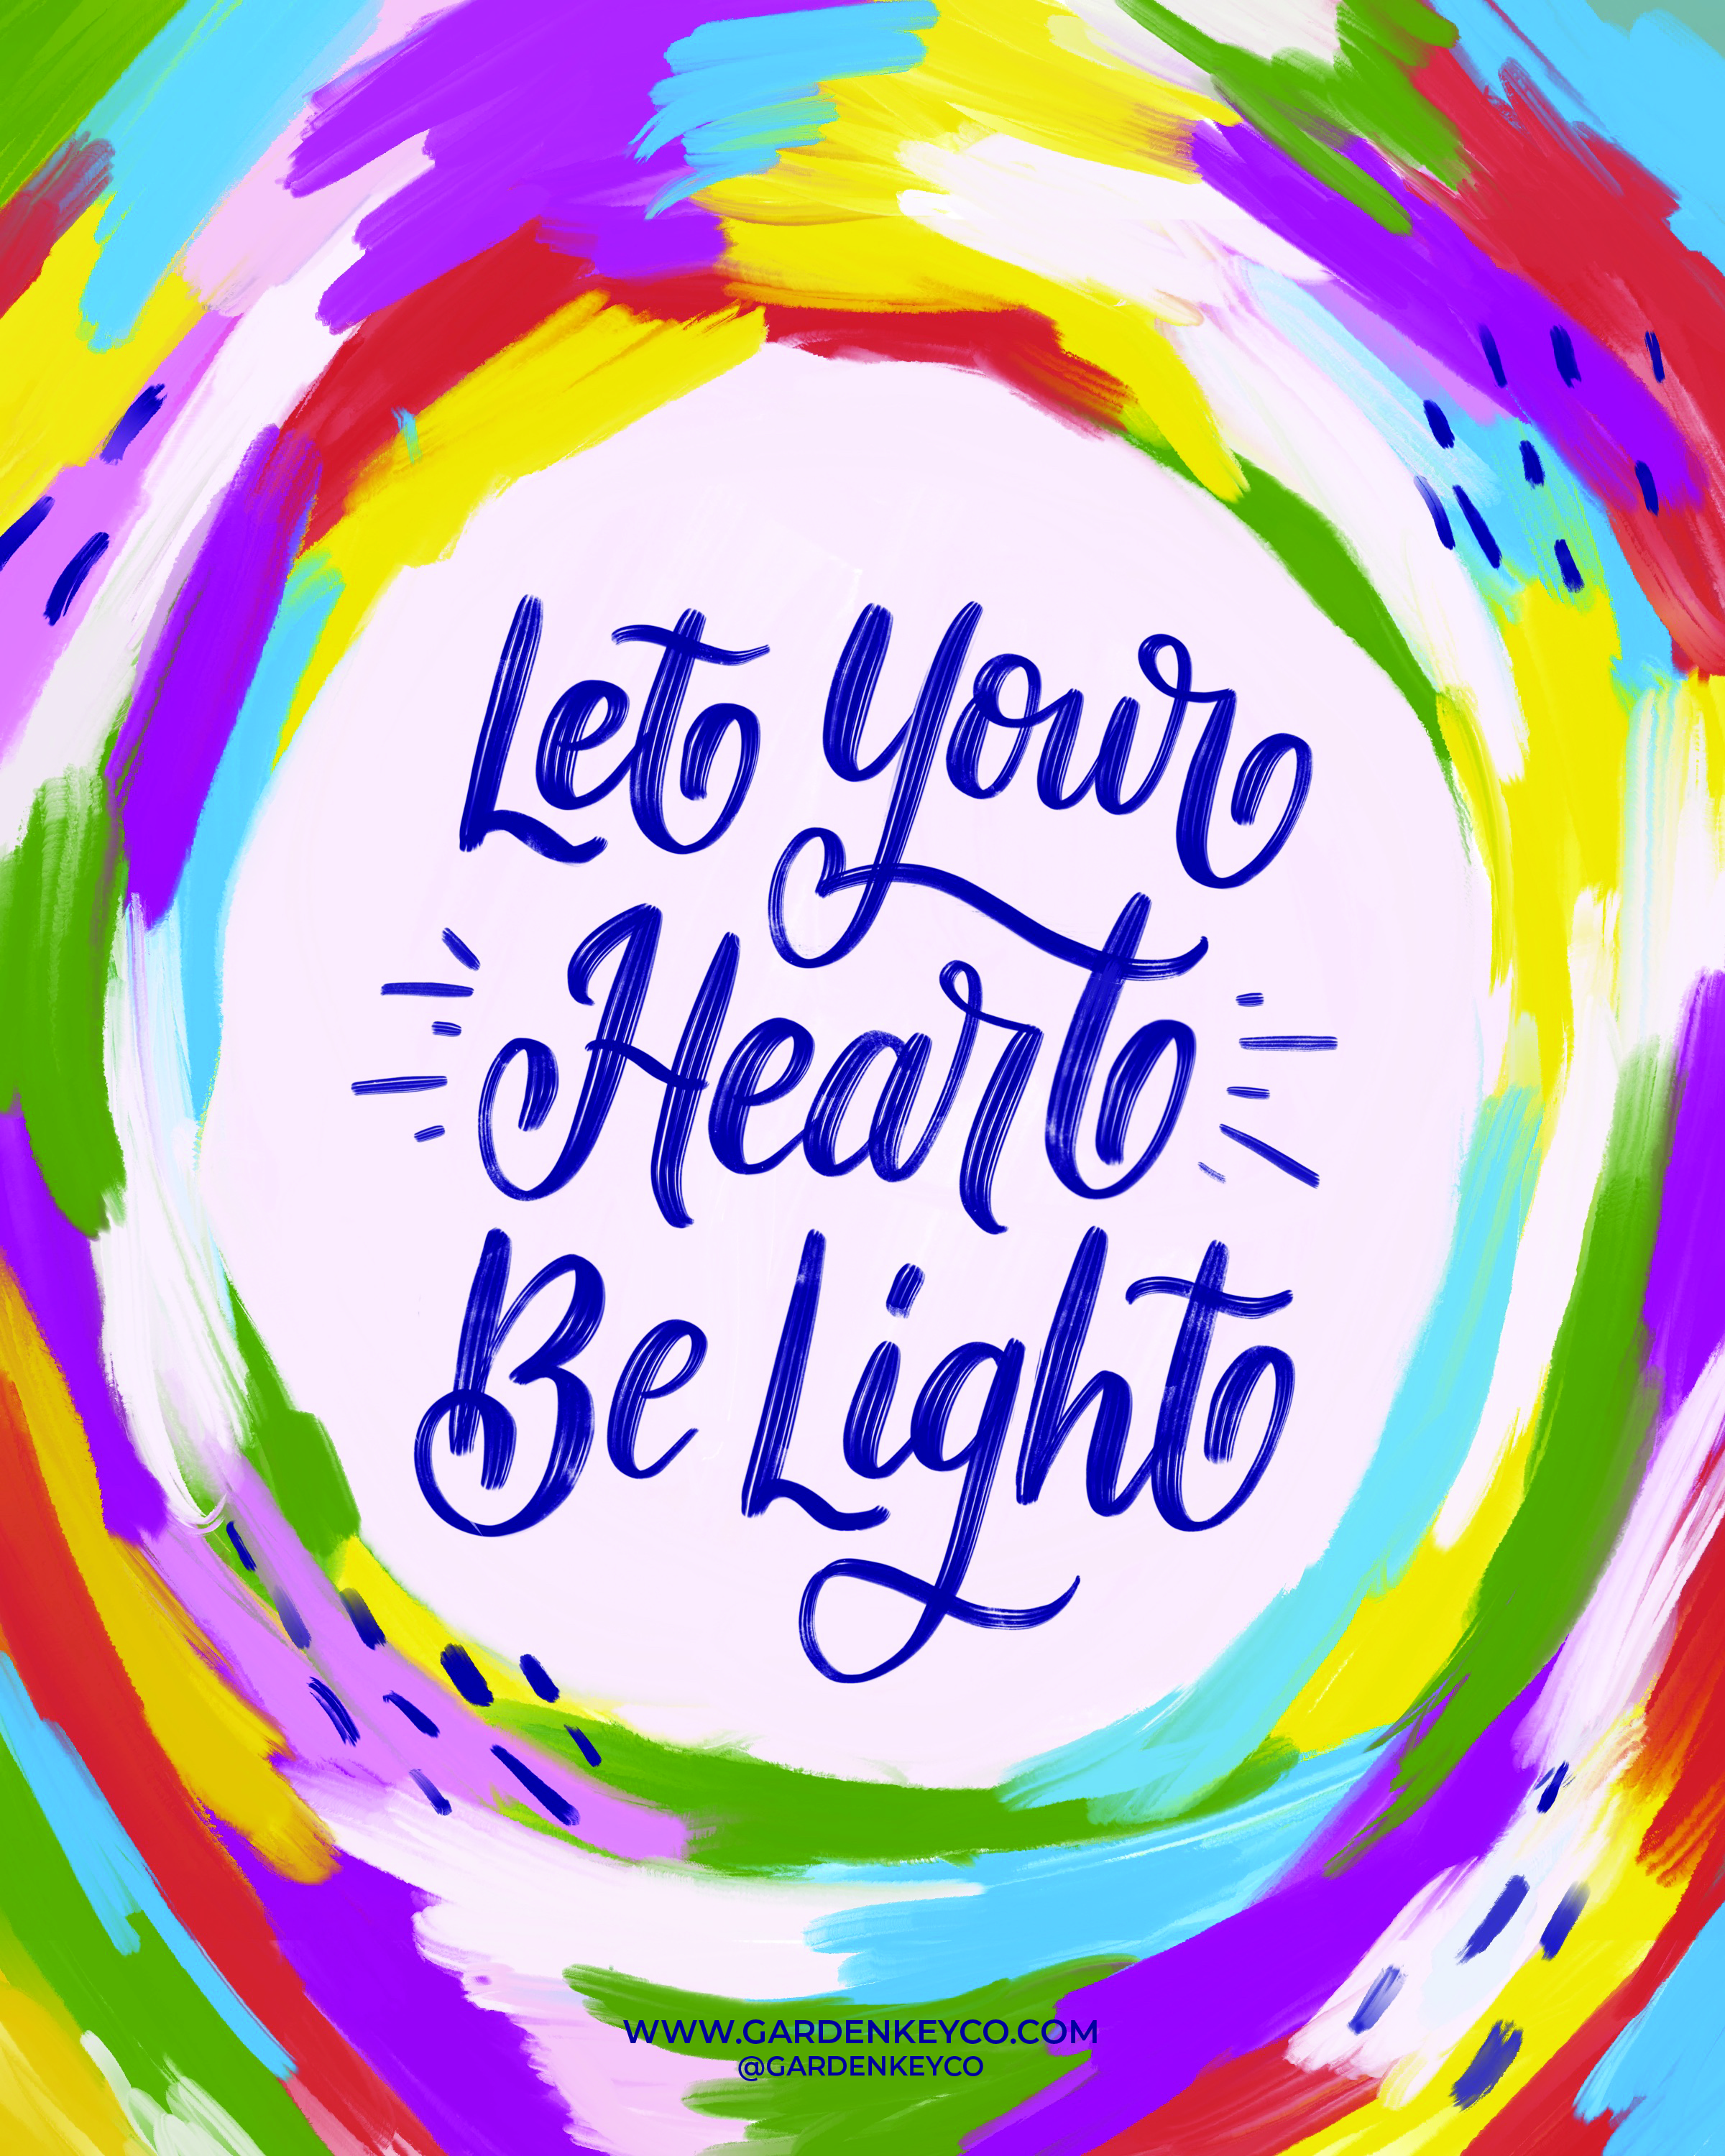 LET YOUR HEART BE LIGHT FREE PRINTABLE GARDEN KEY CO.